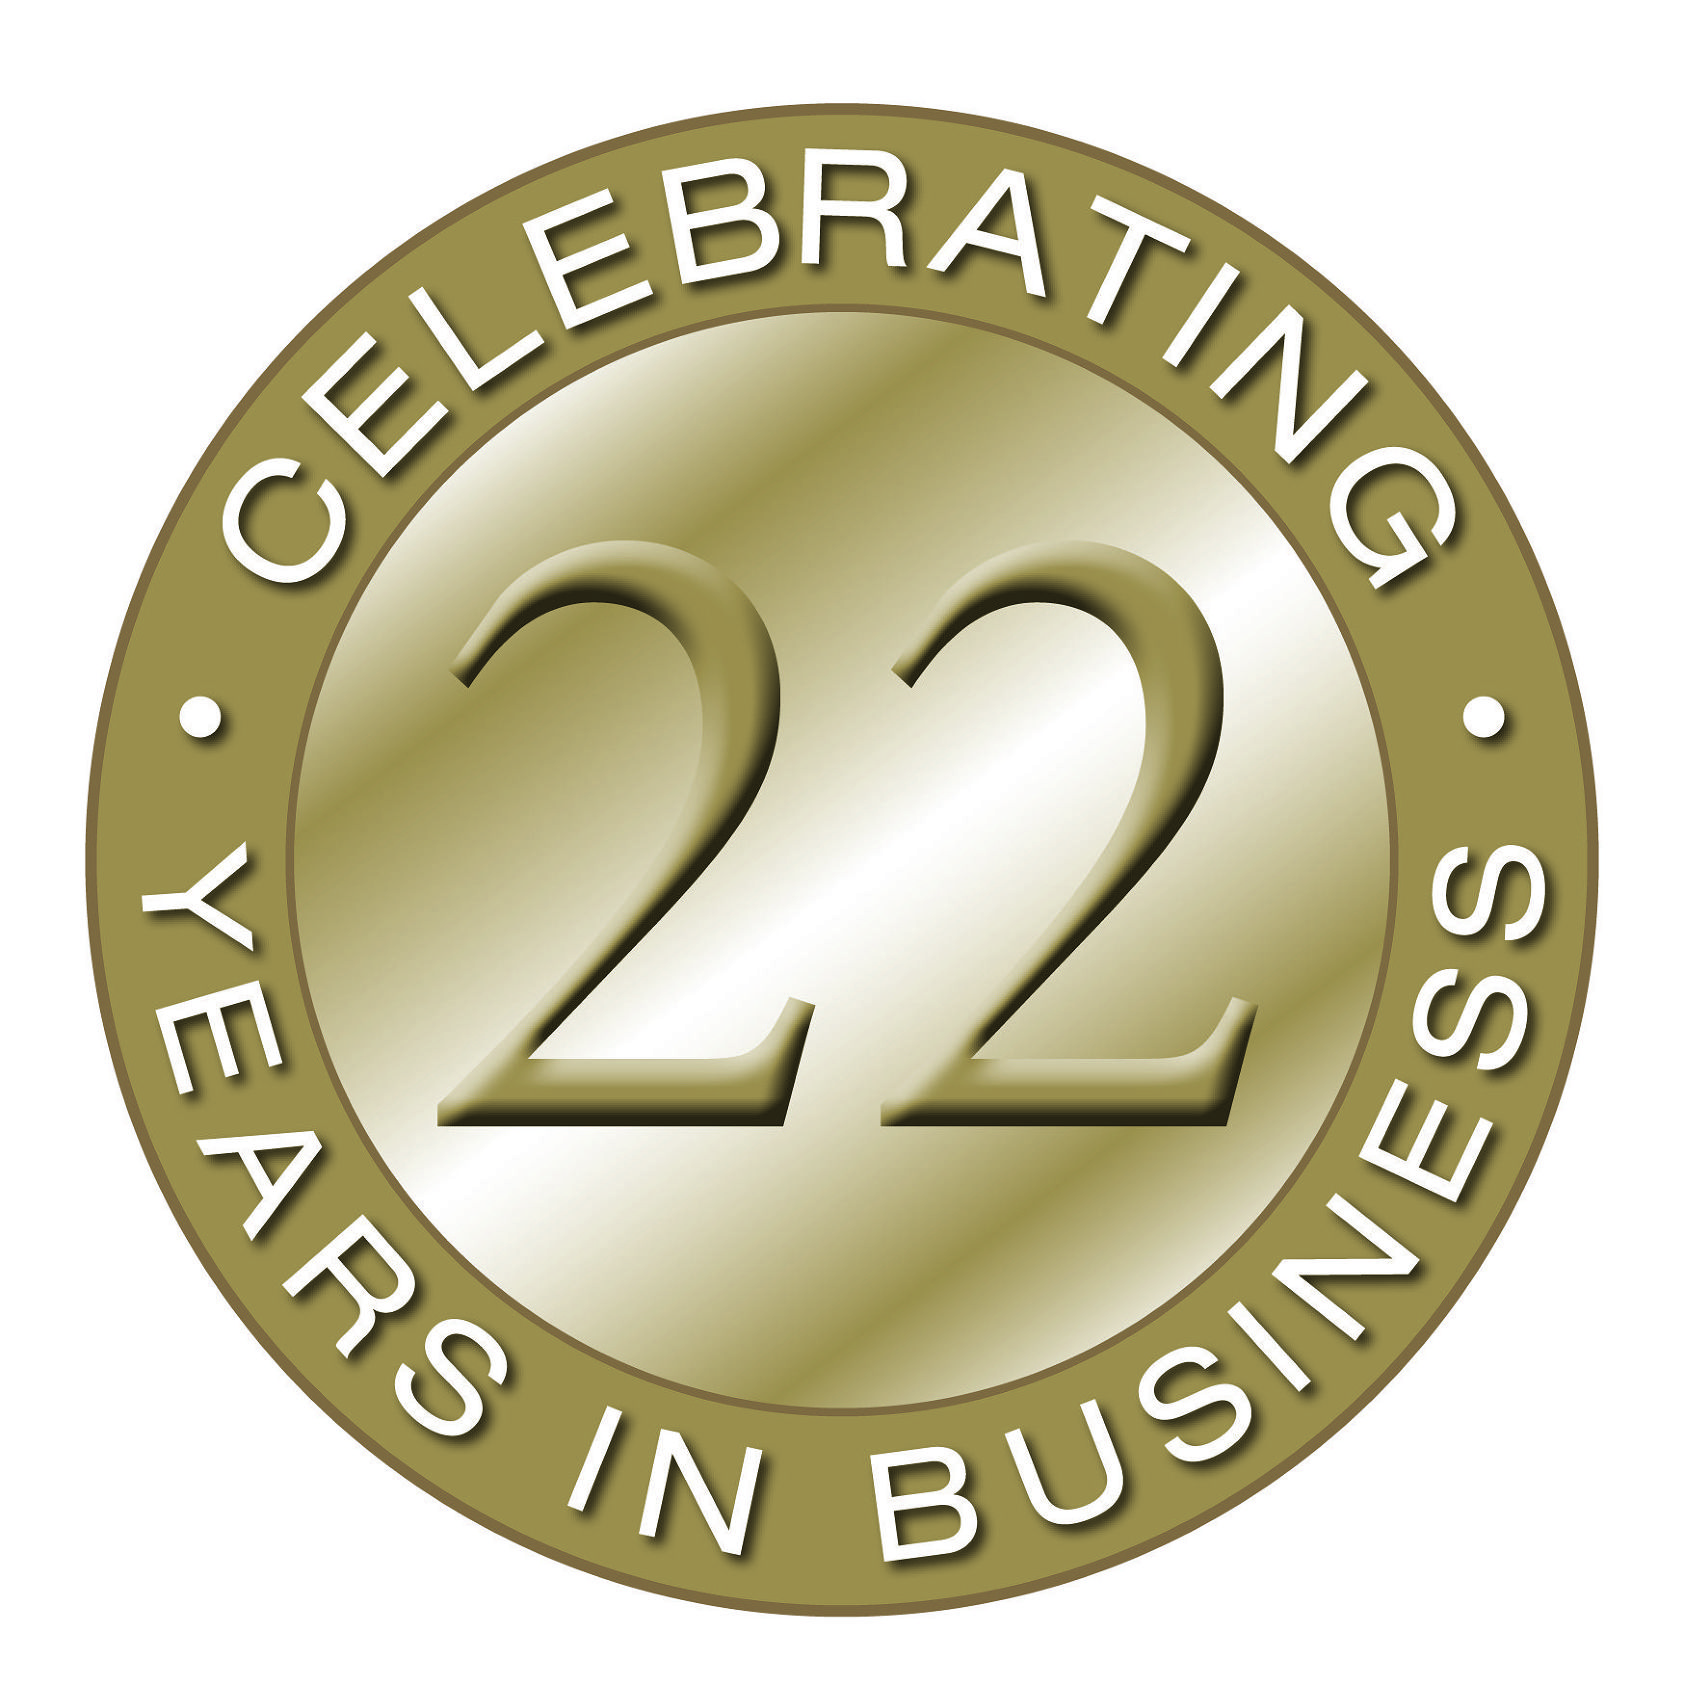 22 years in Business